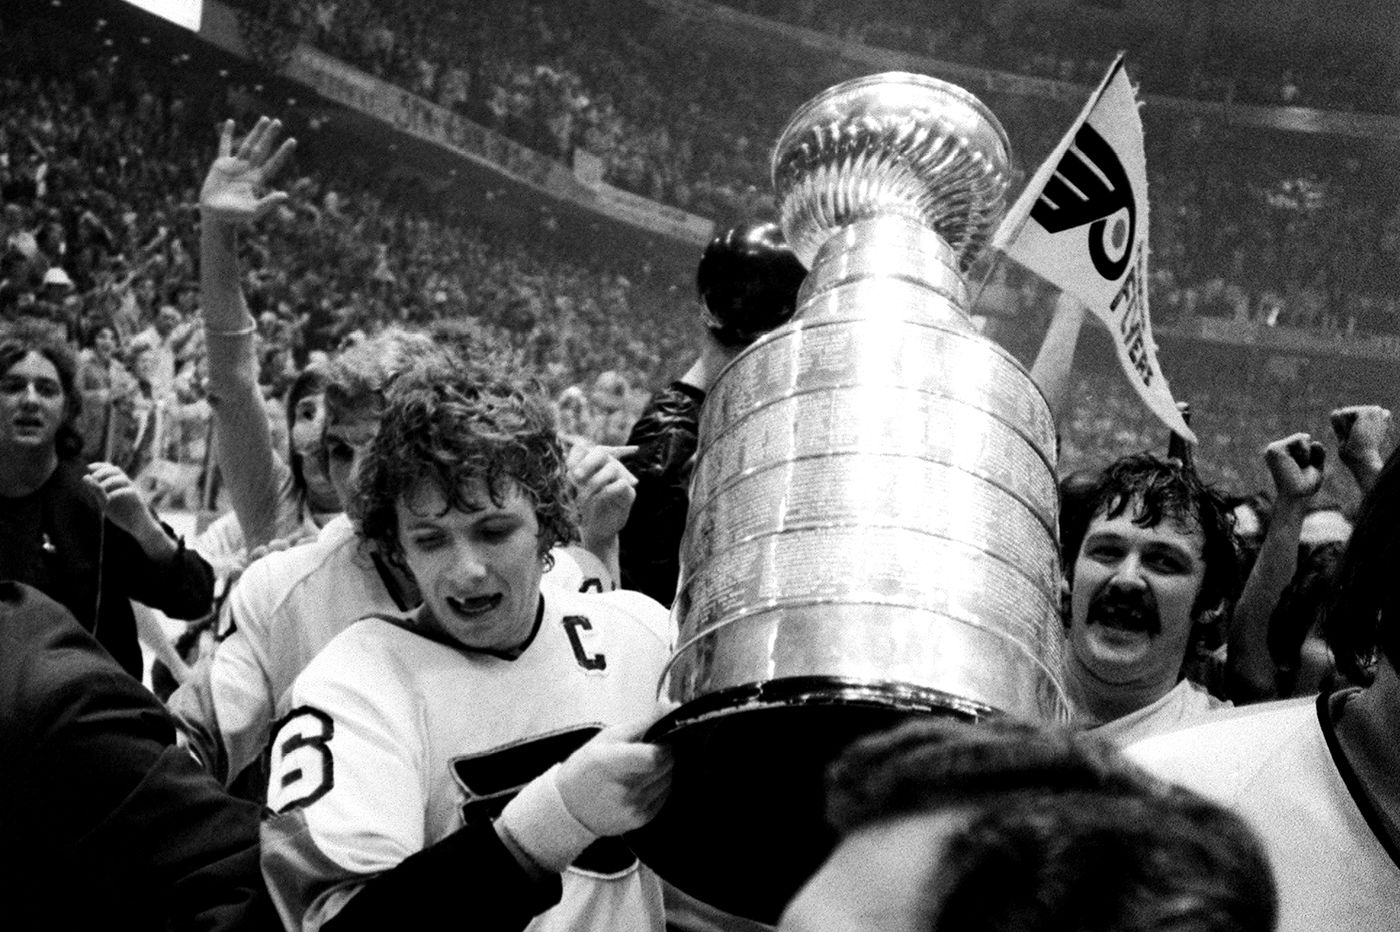 Some good in all this: A chance to relive the Flyers' magical 1974 Stanley Cup clincher with Bernie Parent | Sam Carchidi